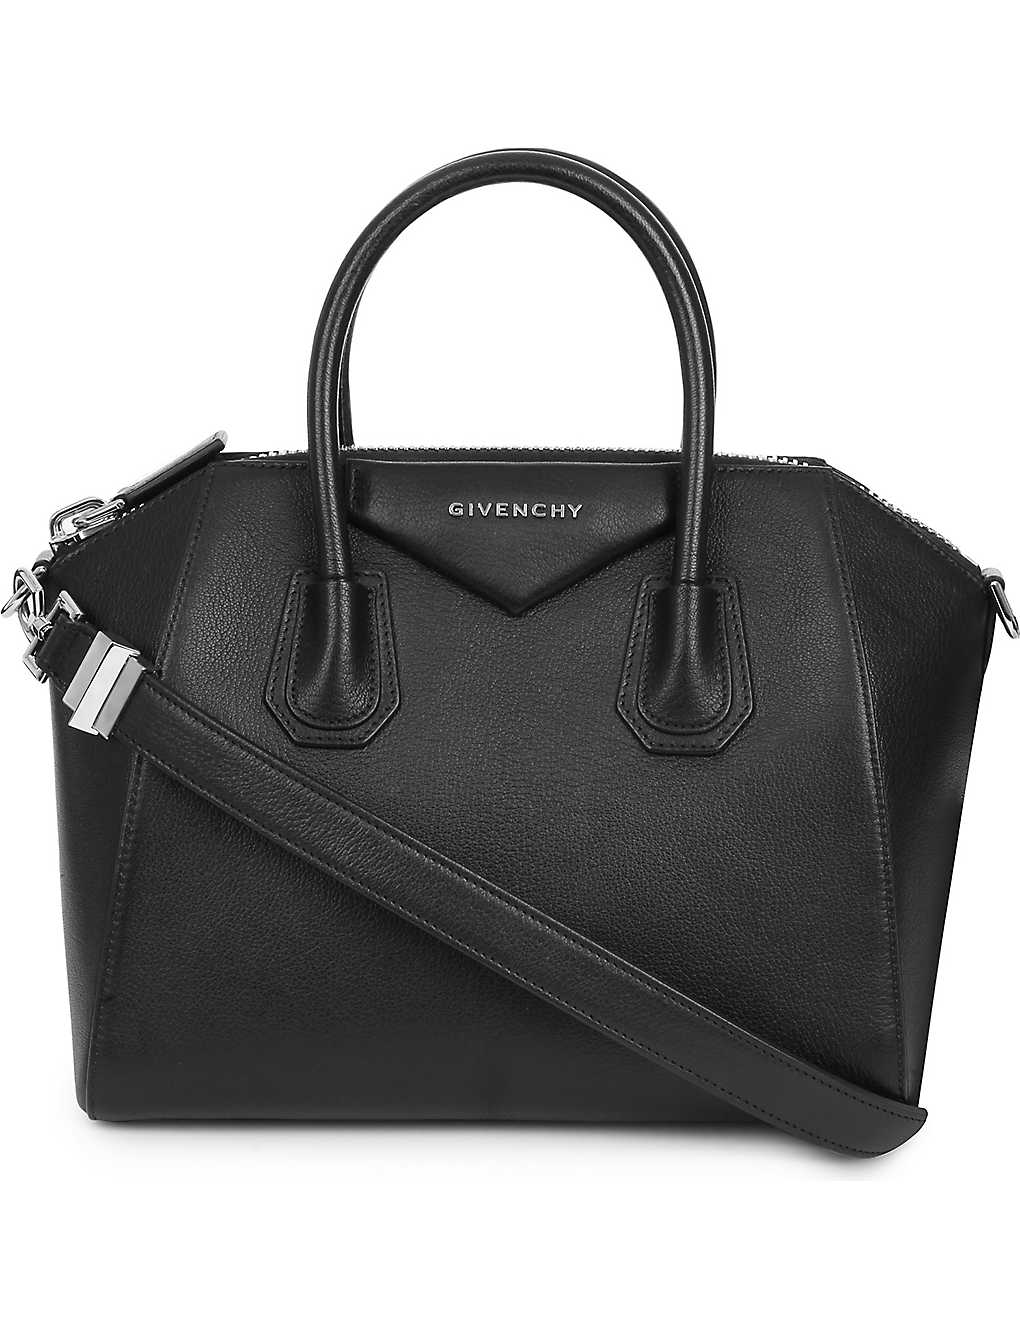 3f7647f96f GIVENCHY - Antigona sugar leather tote | Selfridges.com